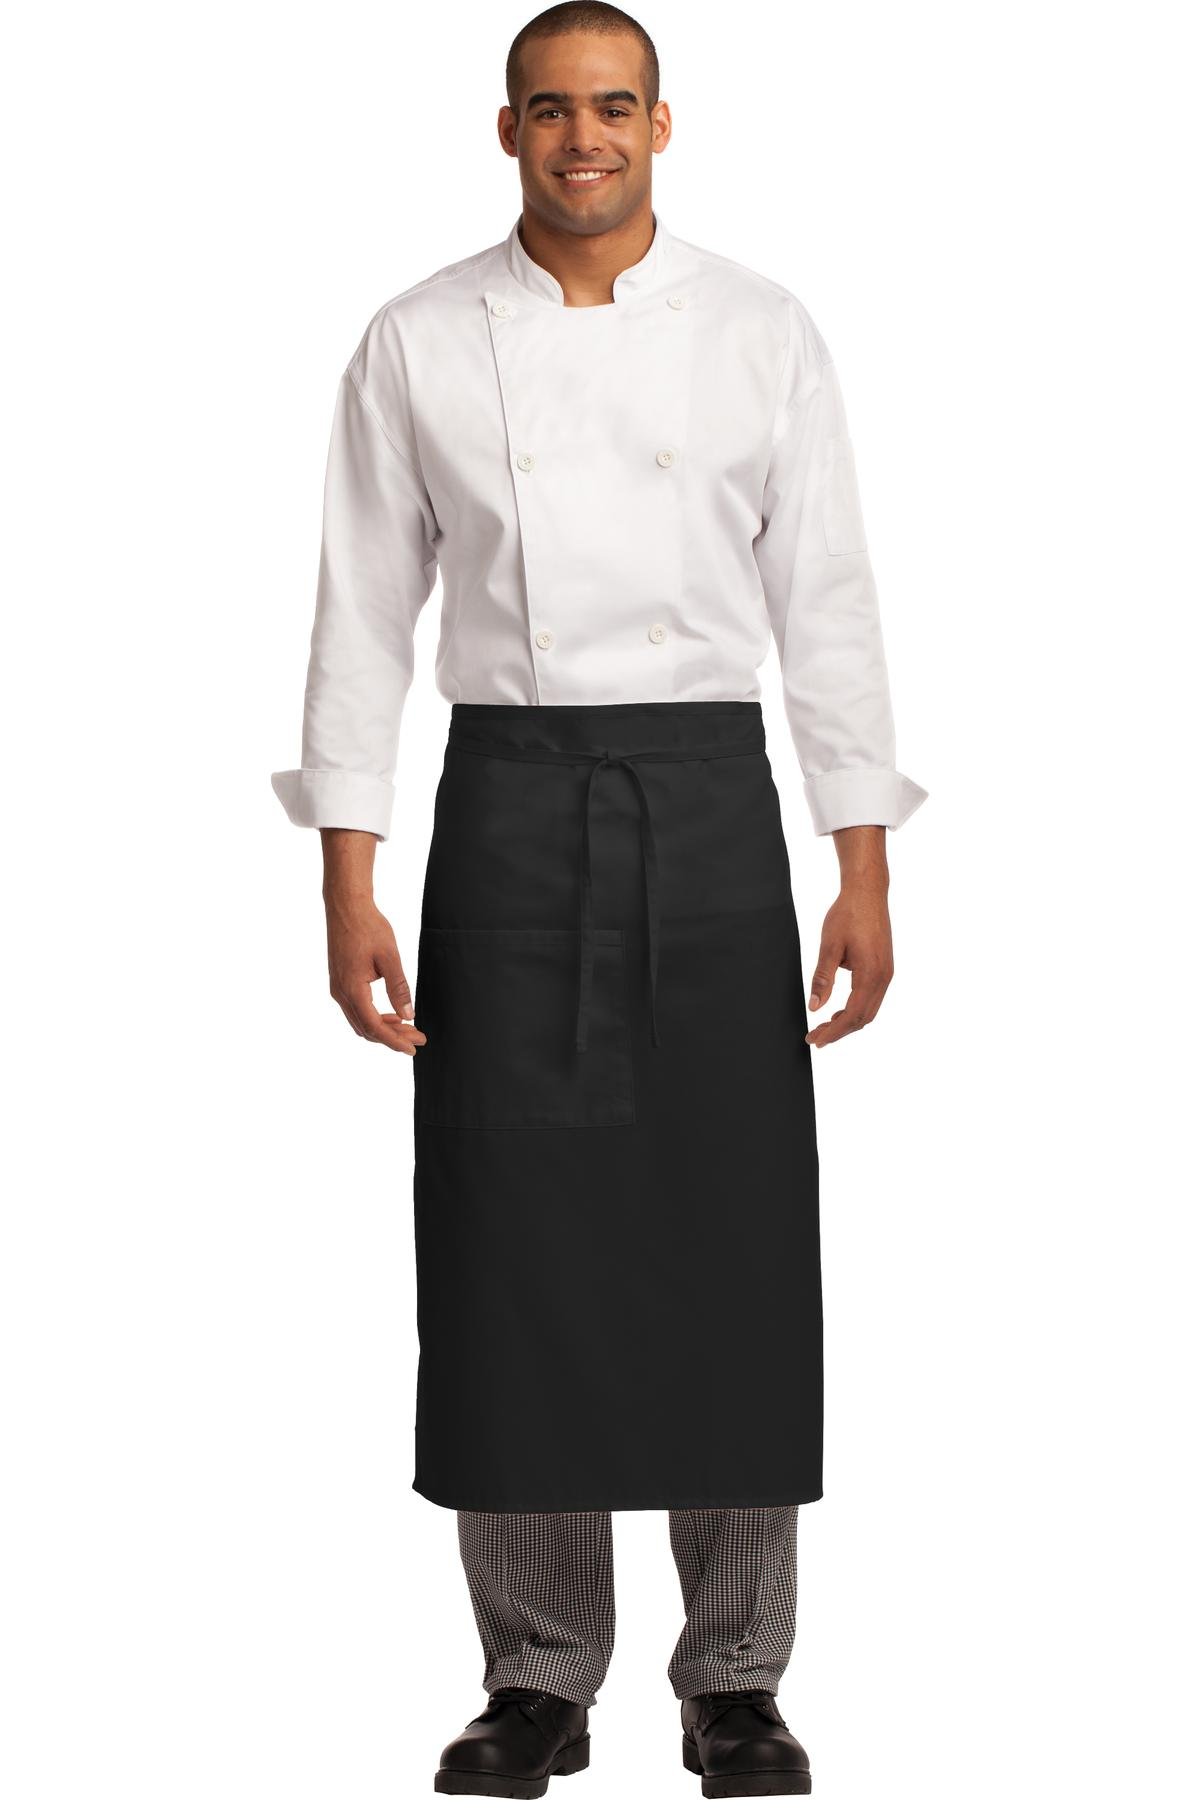 White housekeeping apron